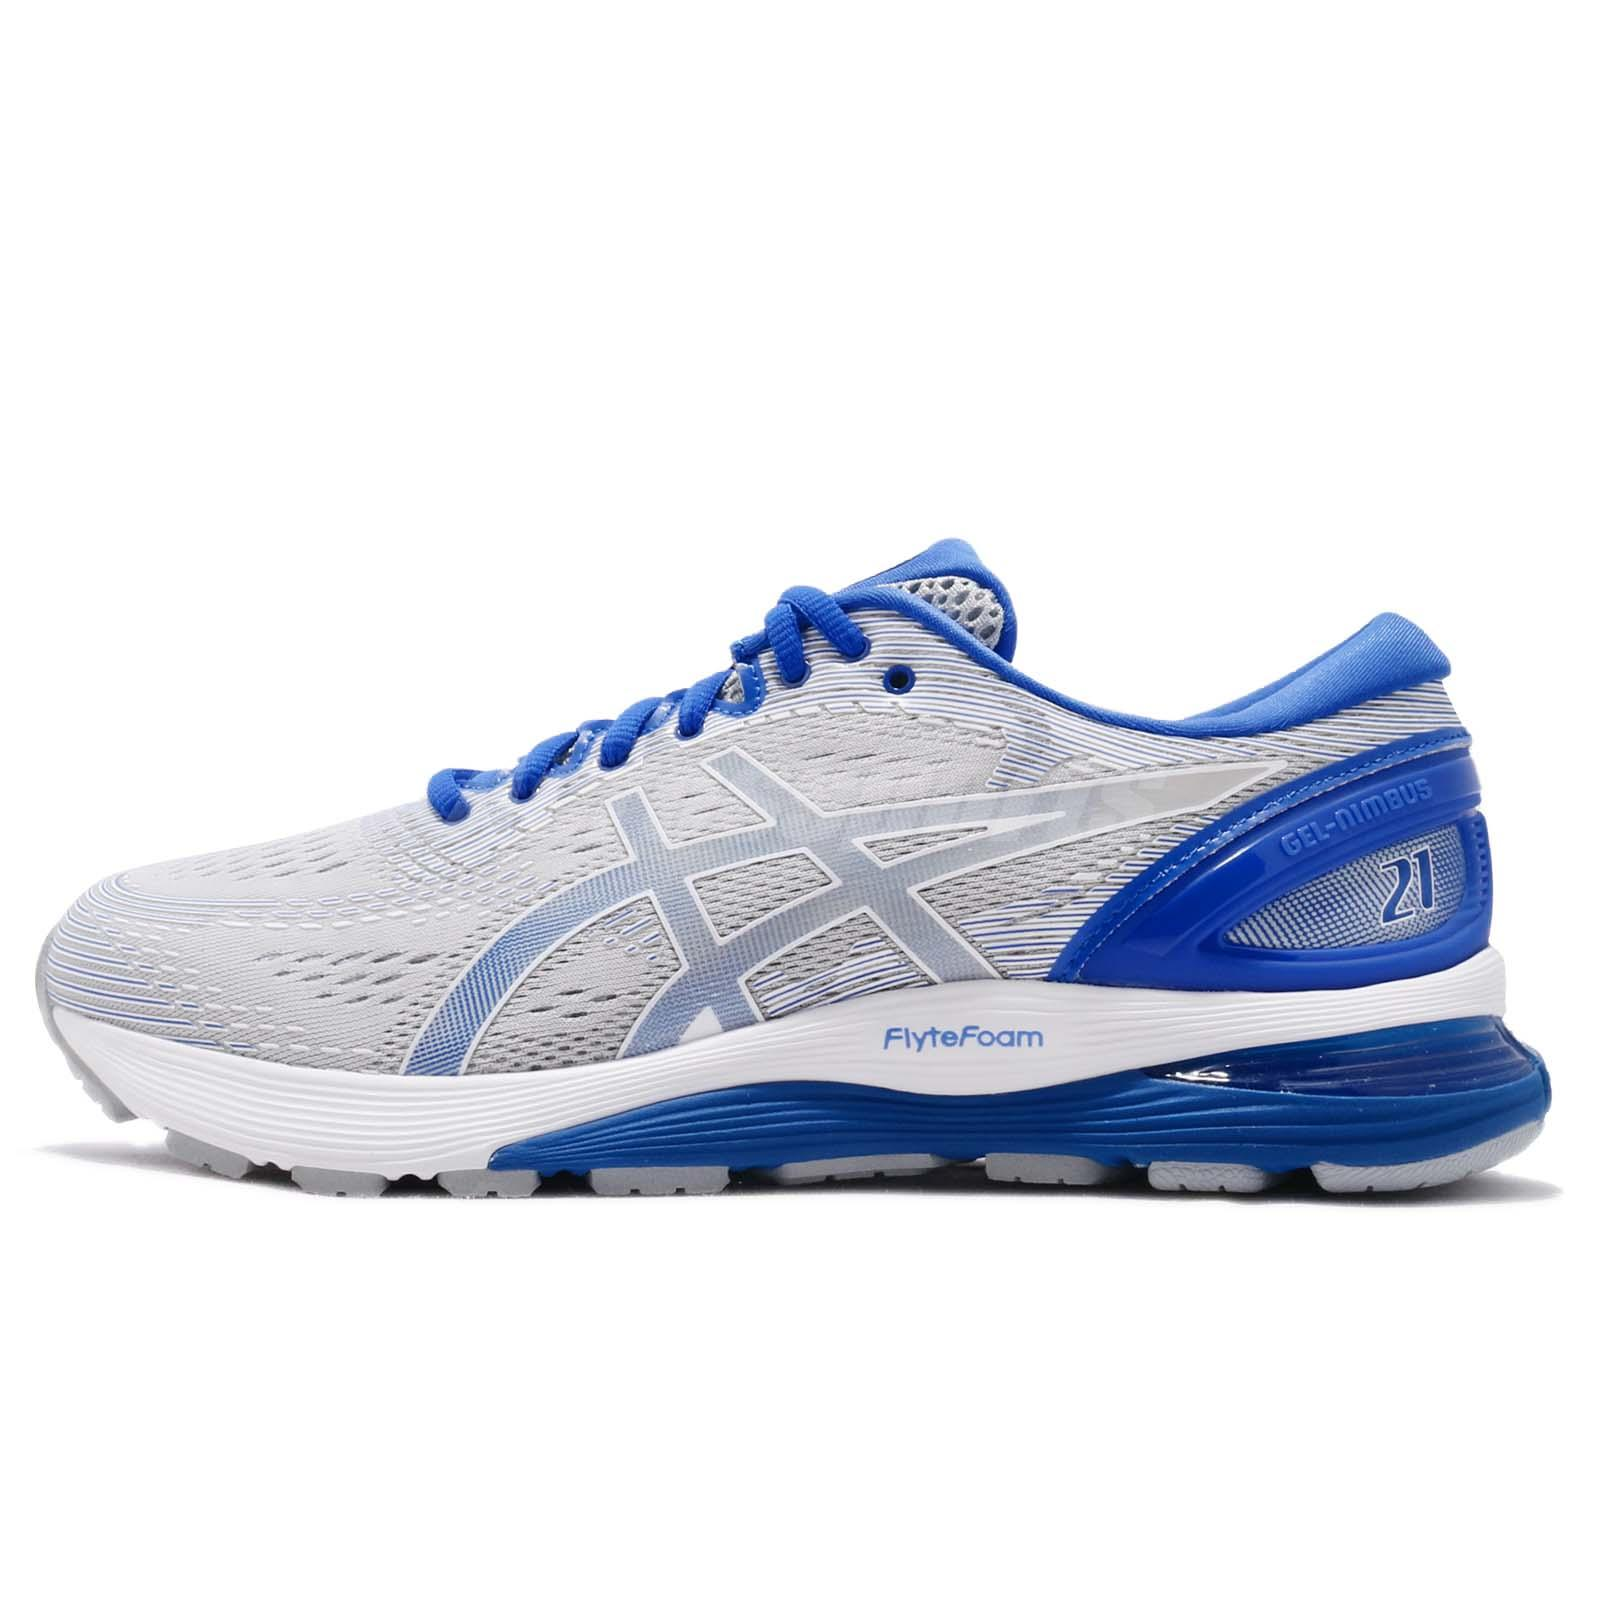 huge selection of 99d07 e8403 Asics Gel Nimbus 21 Lite Show Grey Blue Men Running Shoes Sneakers  1011A207-020